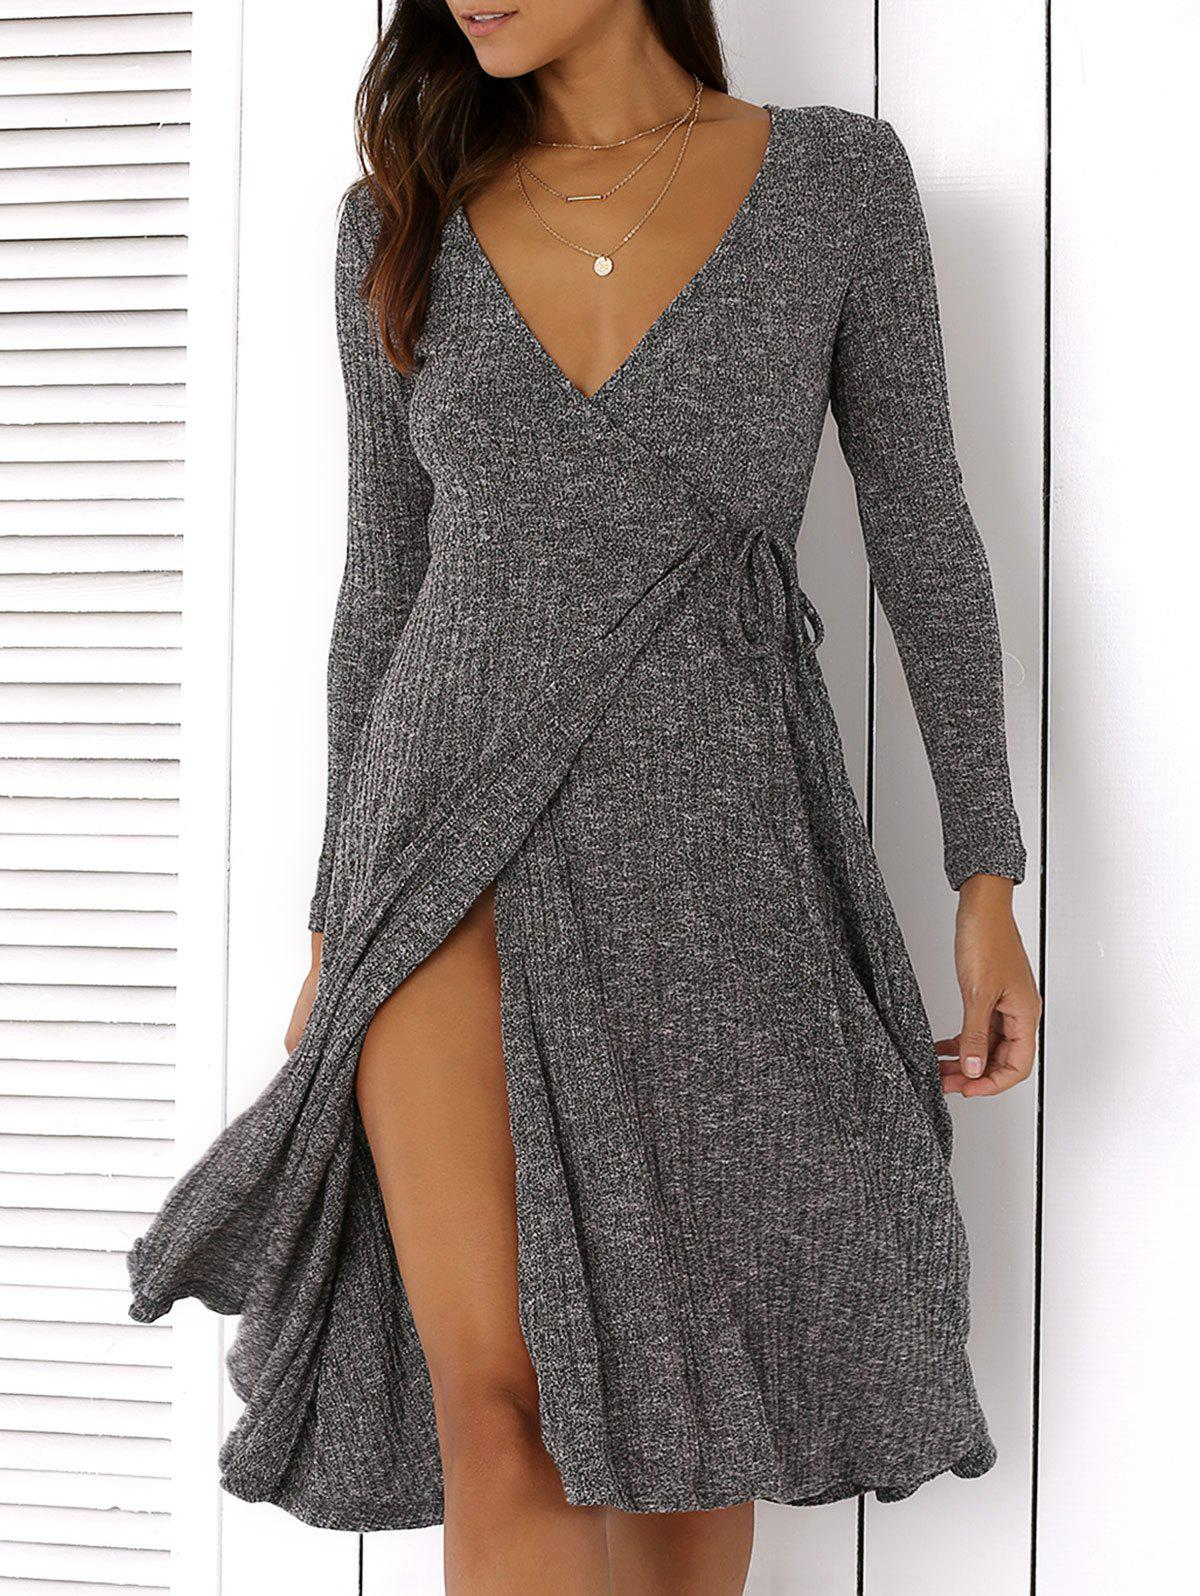 Plunging Neck Tie-Side Long Sleeve Dress - GRAY 2XL